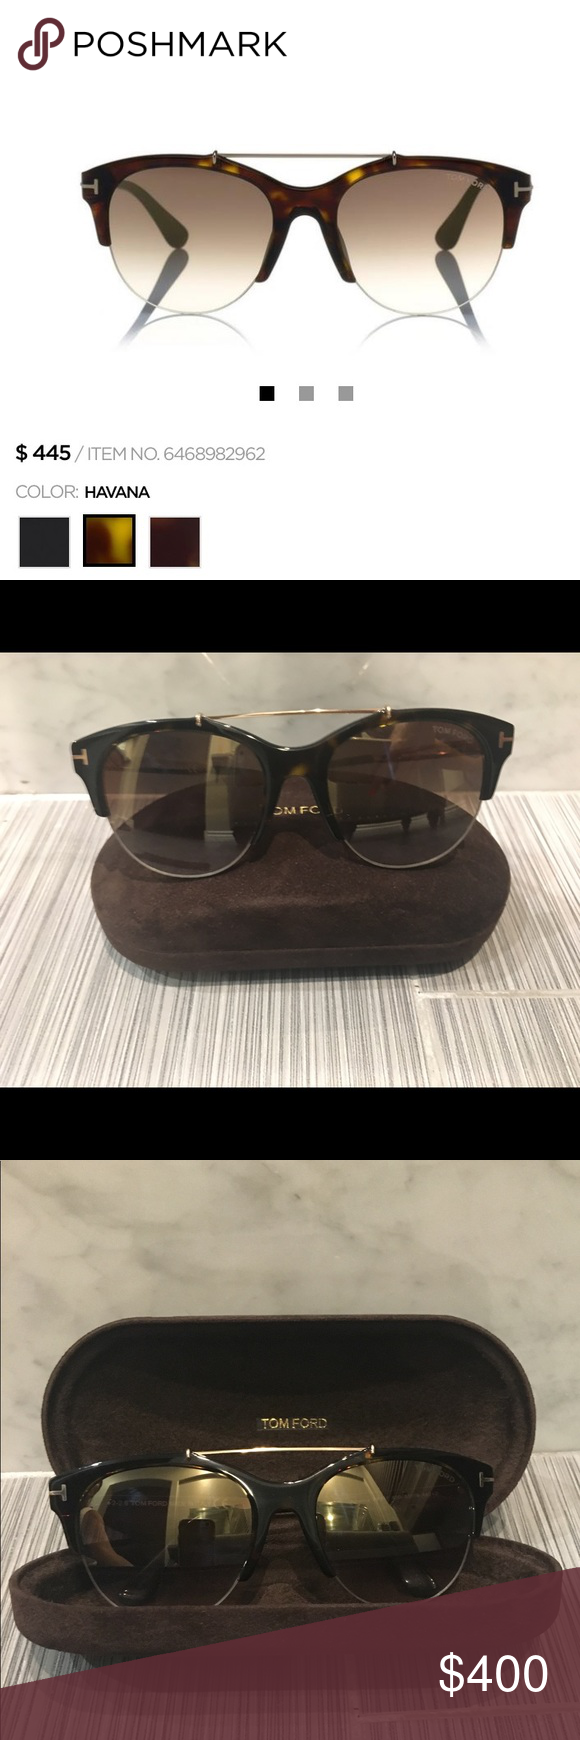 8f12211452c0 Tom Ford Sunglasses WORN ONLY ONCE! PRICE IS NON-NEGOTIABLE. I have the